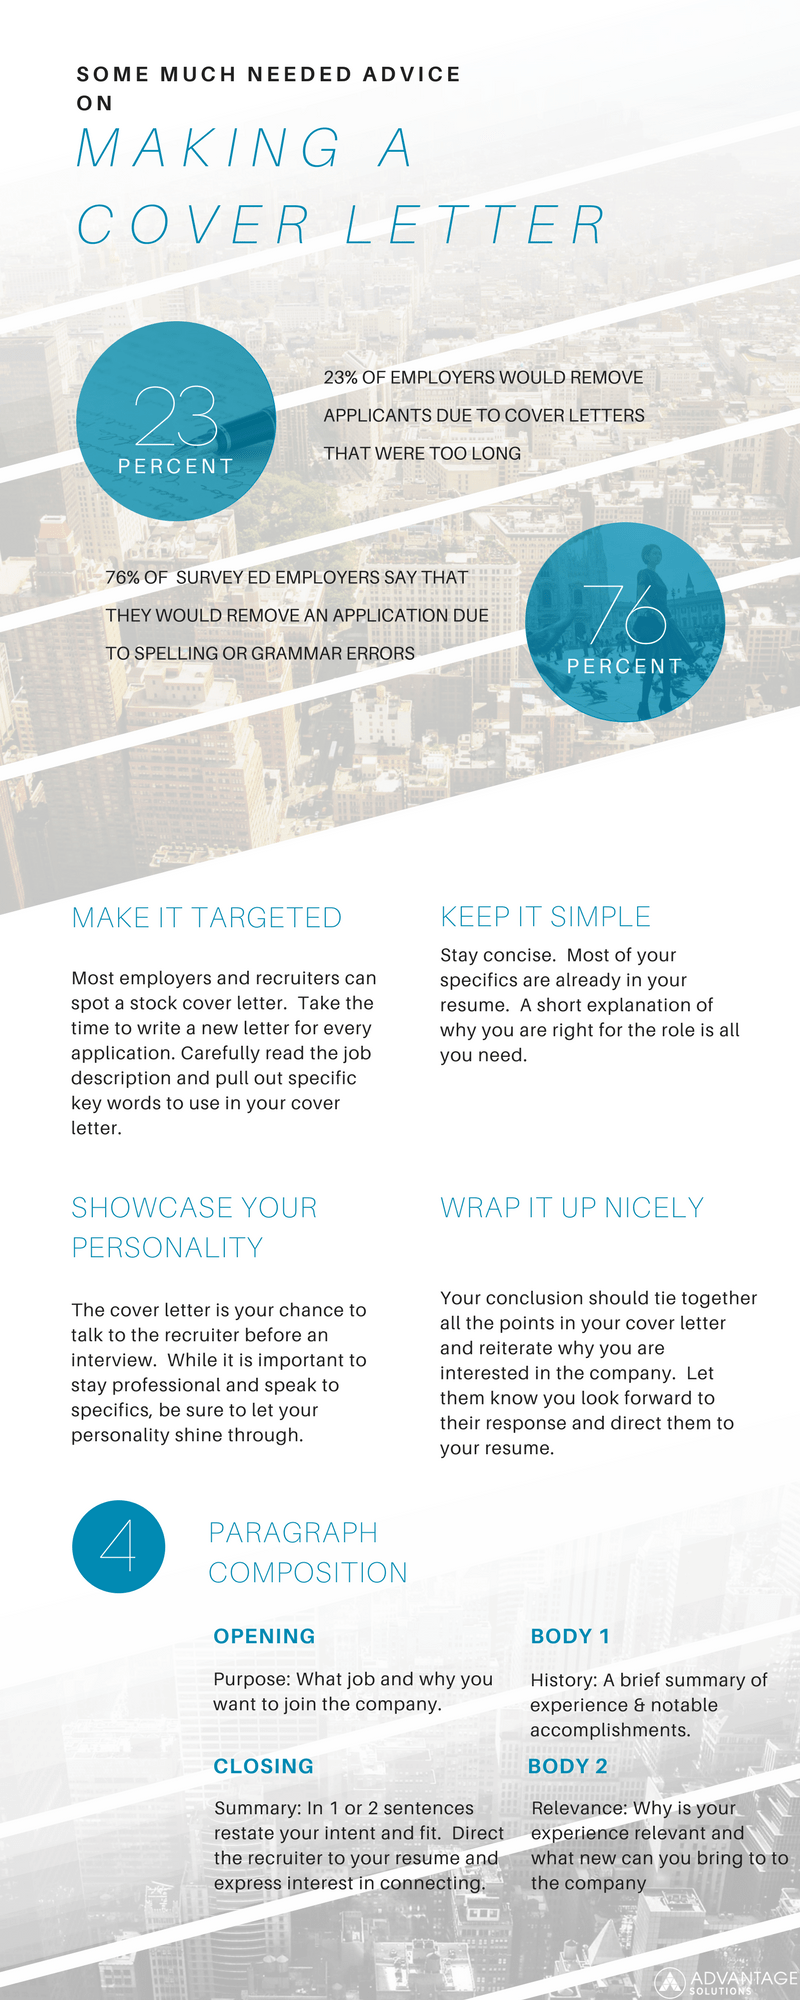 Targeted Cover Letter Some Much Needed Advice On Creating A Cover Letter Advantage